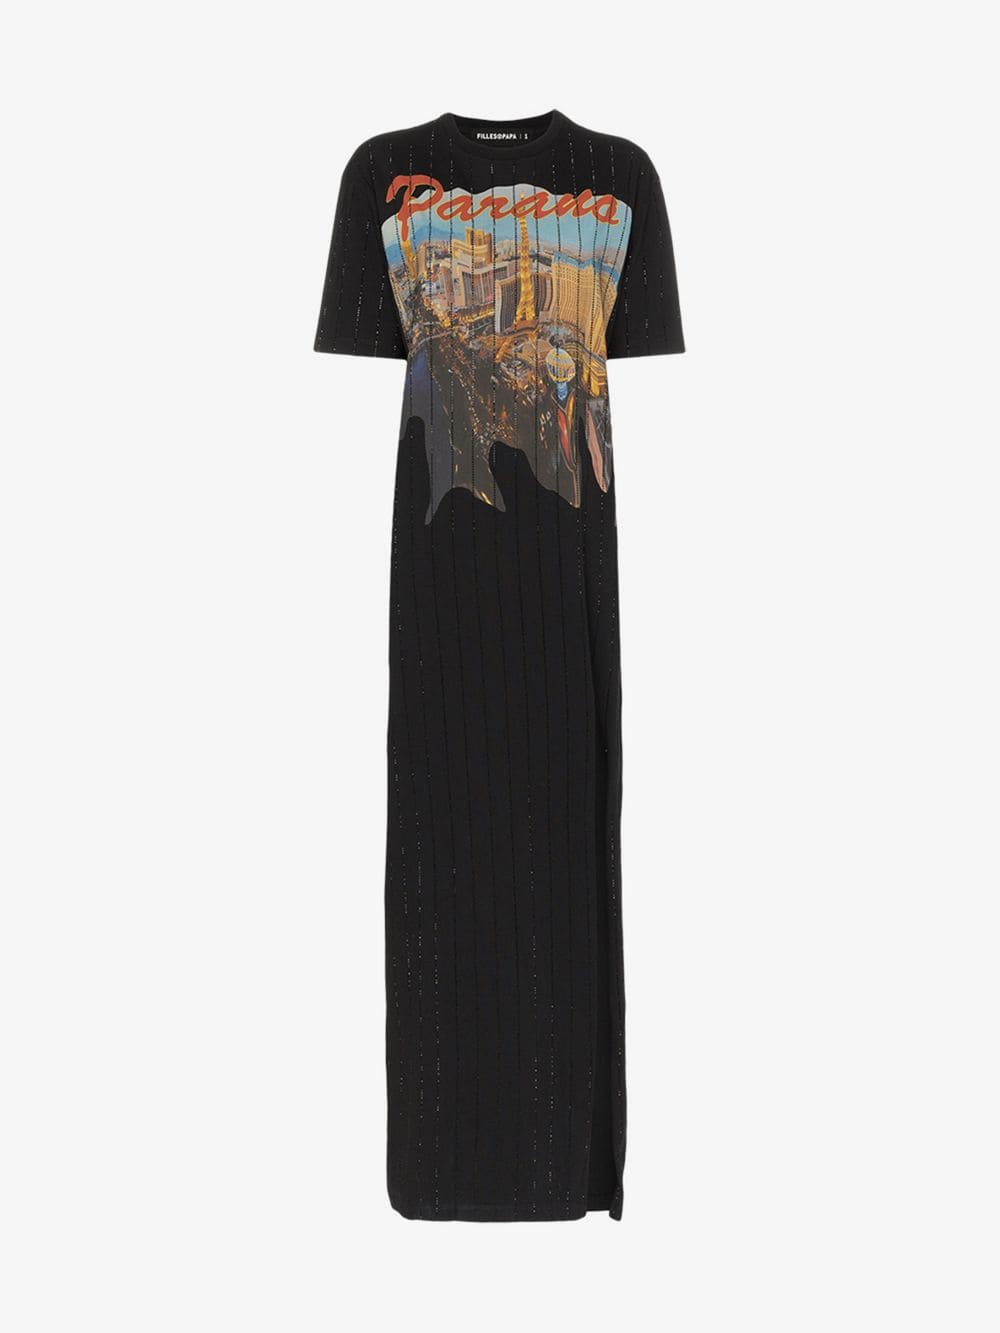 Filles A Papa Riviera crystal-embellished cotton T-shirt dress in black